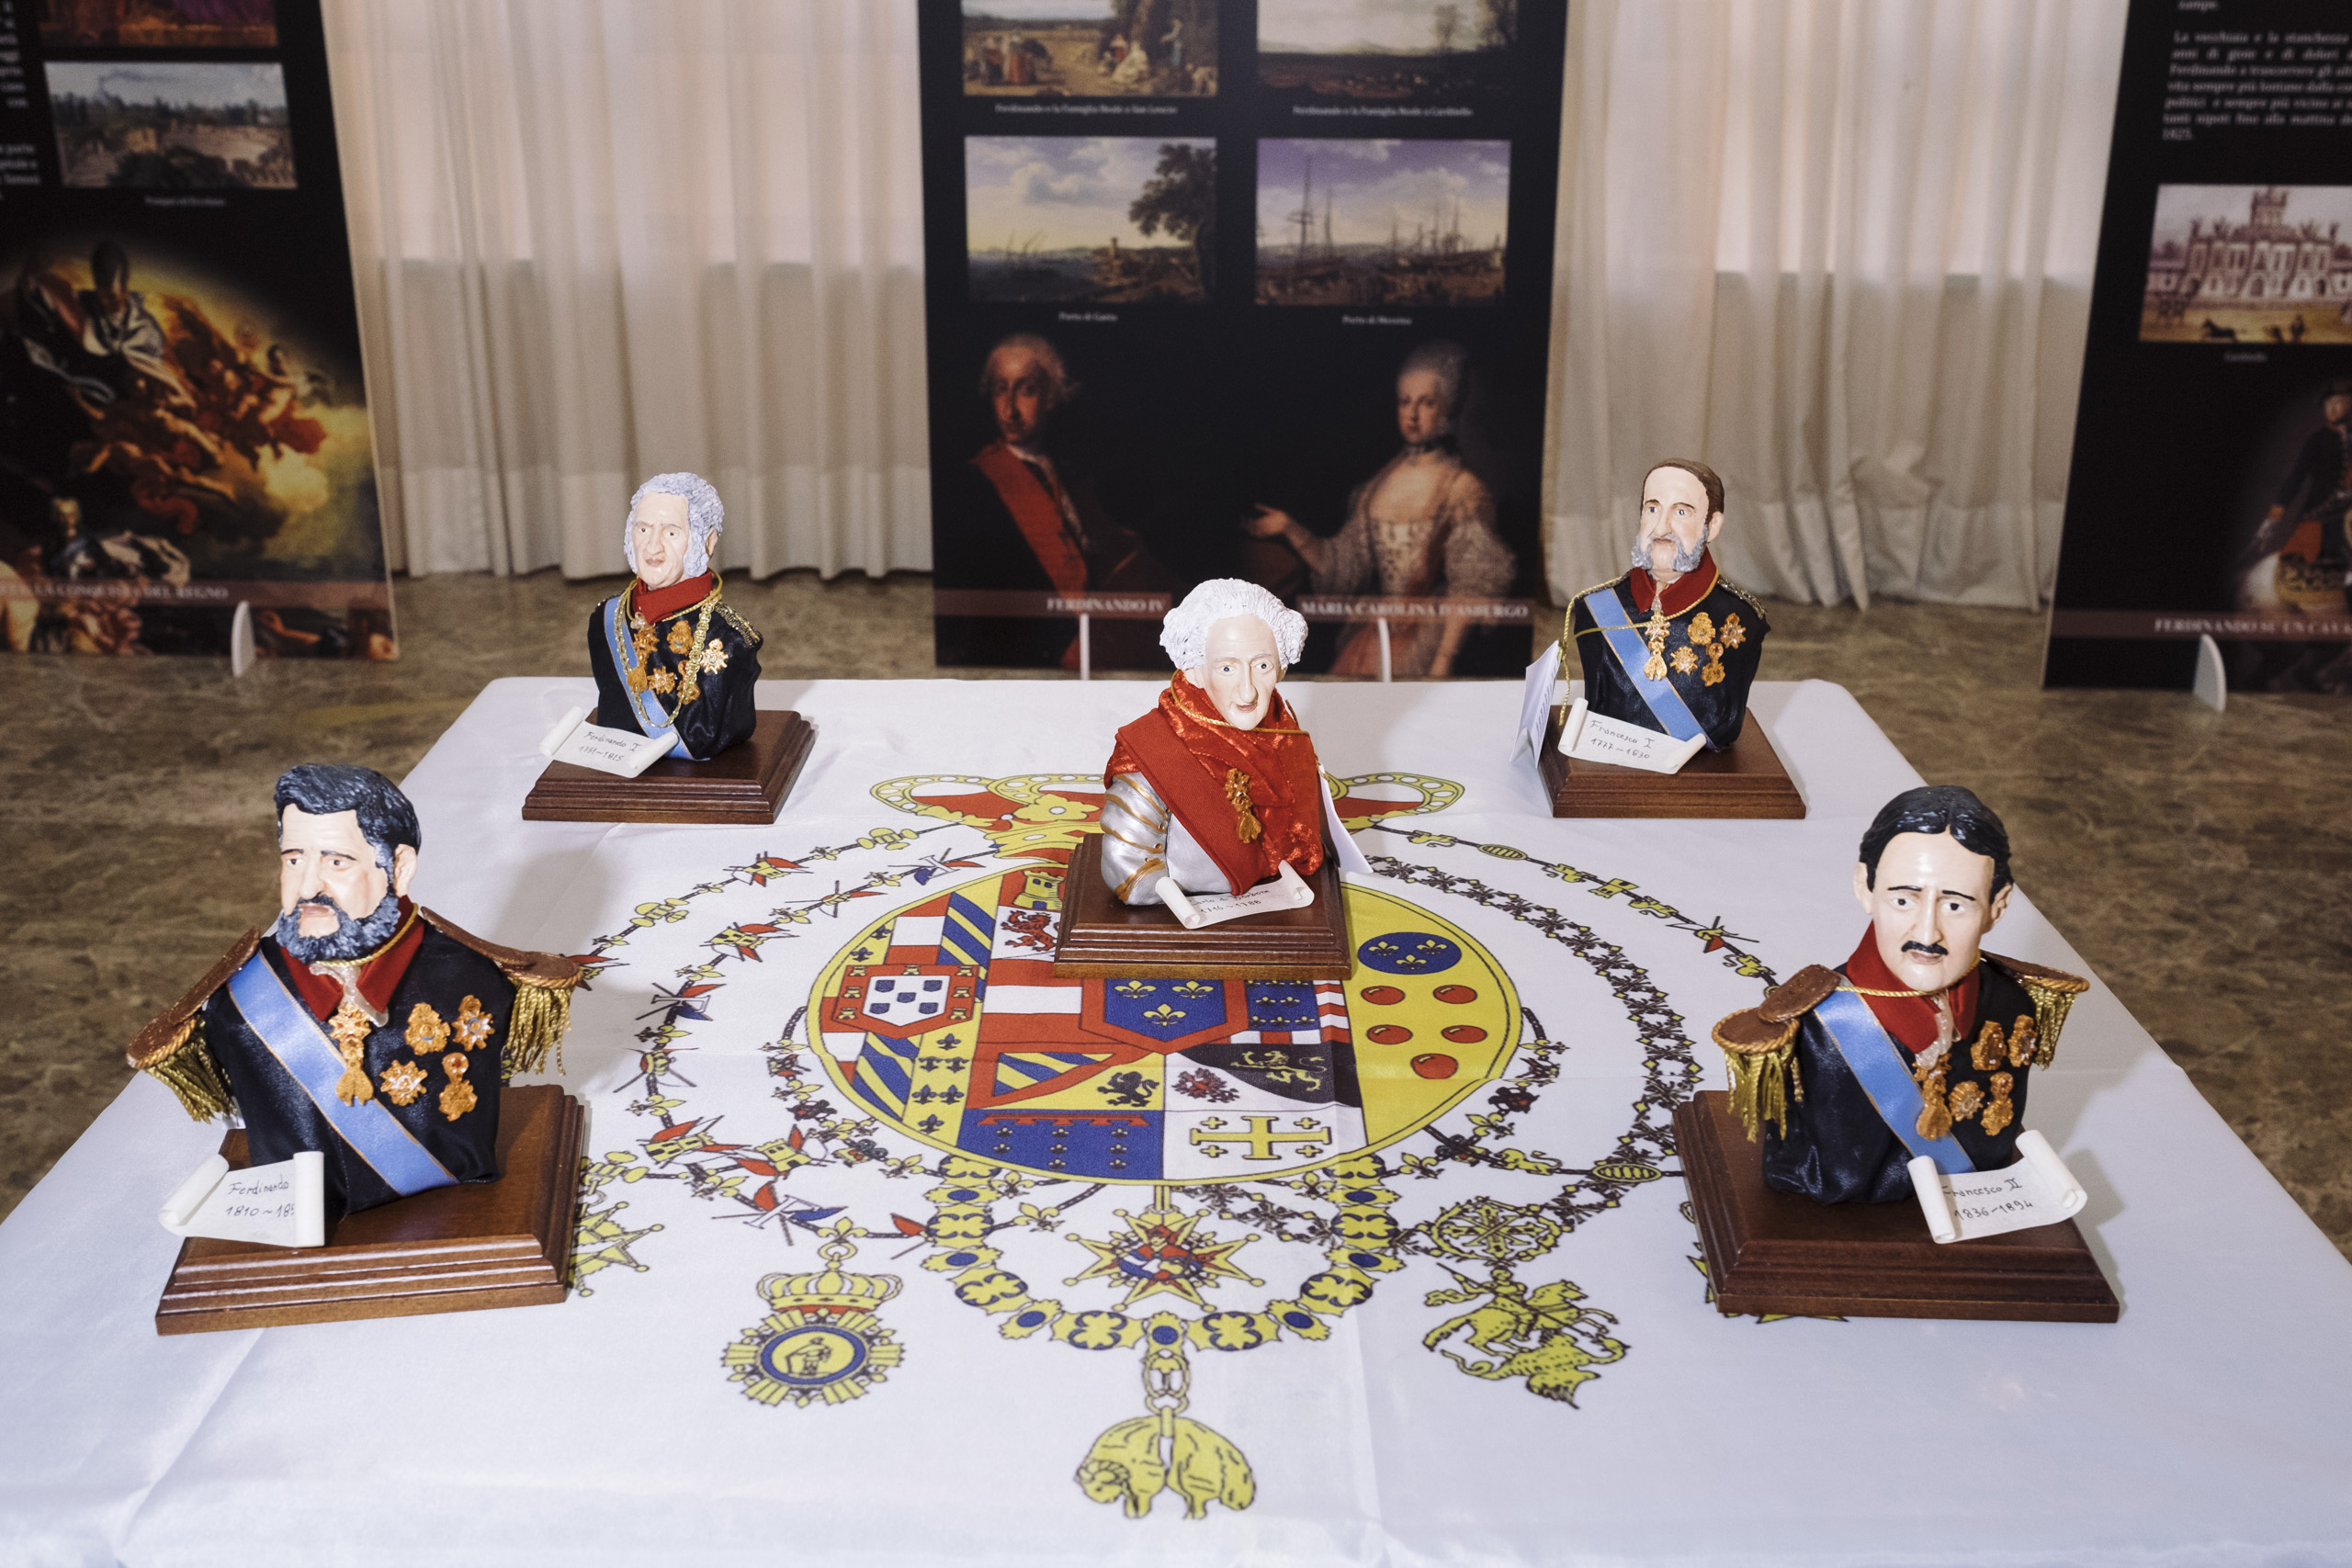 Little statues portraying the five Bourbon kings that have been on the throne of the Kingdom of Two Sicilies, February, 2016. From the left to right: Ferdinand II, Ferdinand I, Charles, Francis I and Francis II.